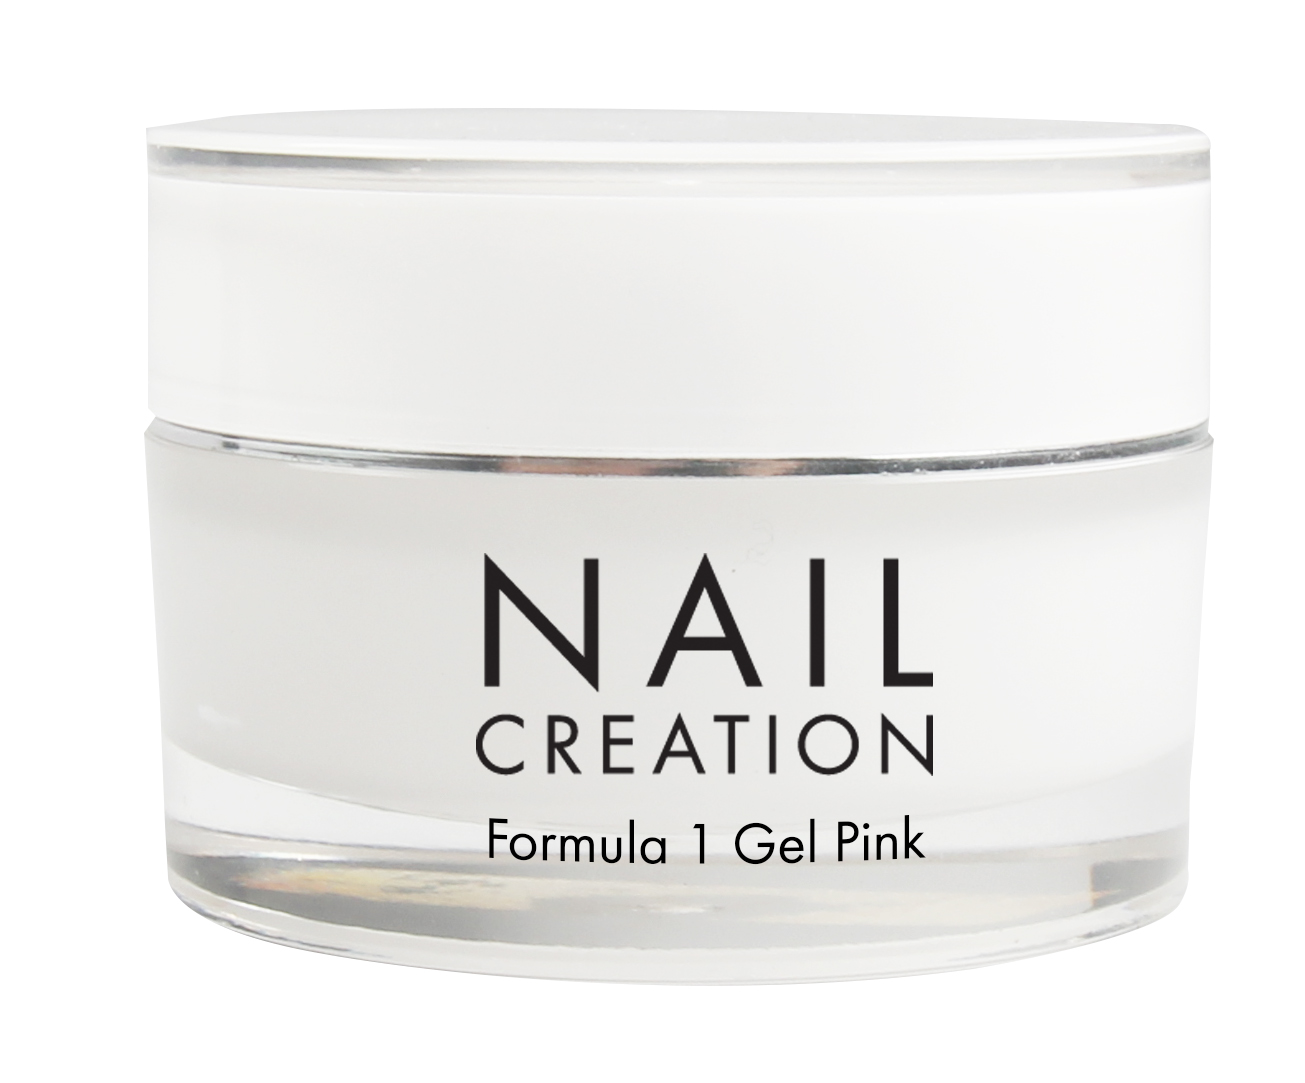 Afbeelding van Nail Creation Formula 1 Gel - Pink 50 ml